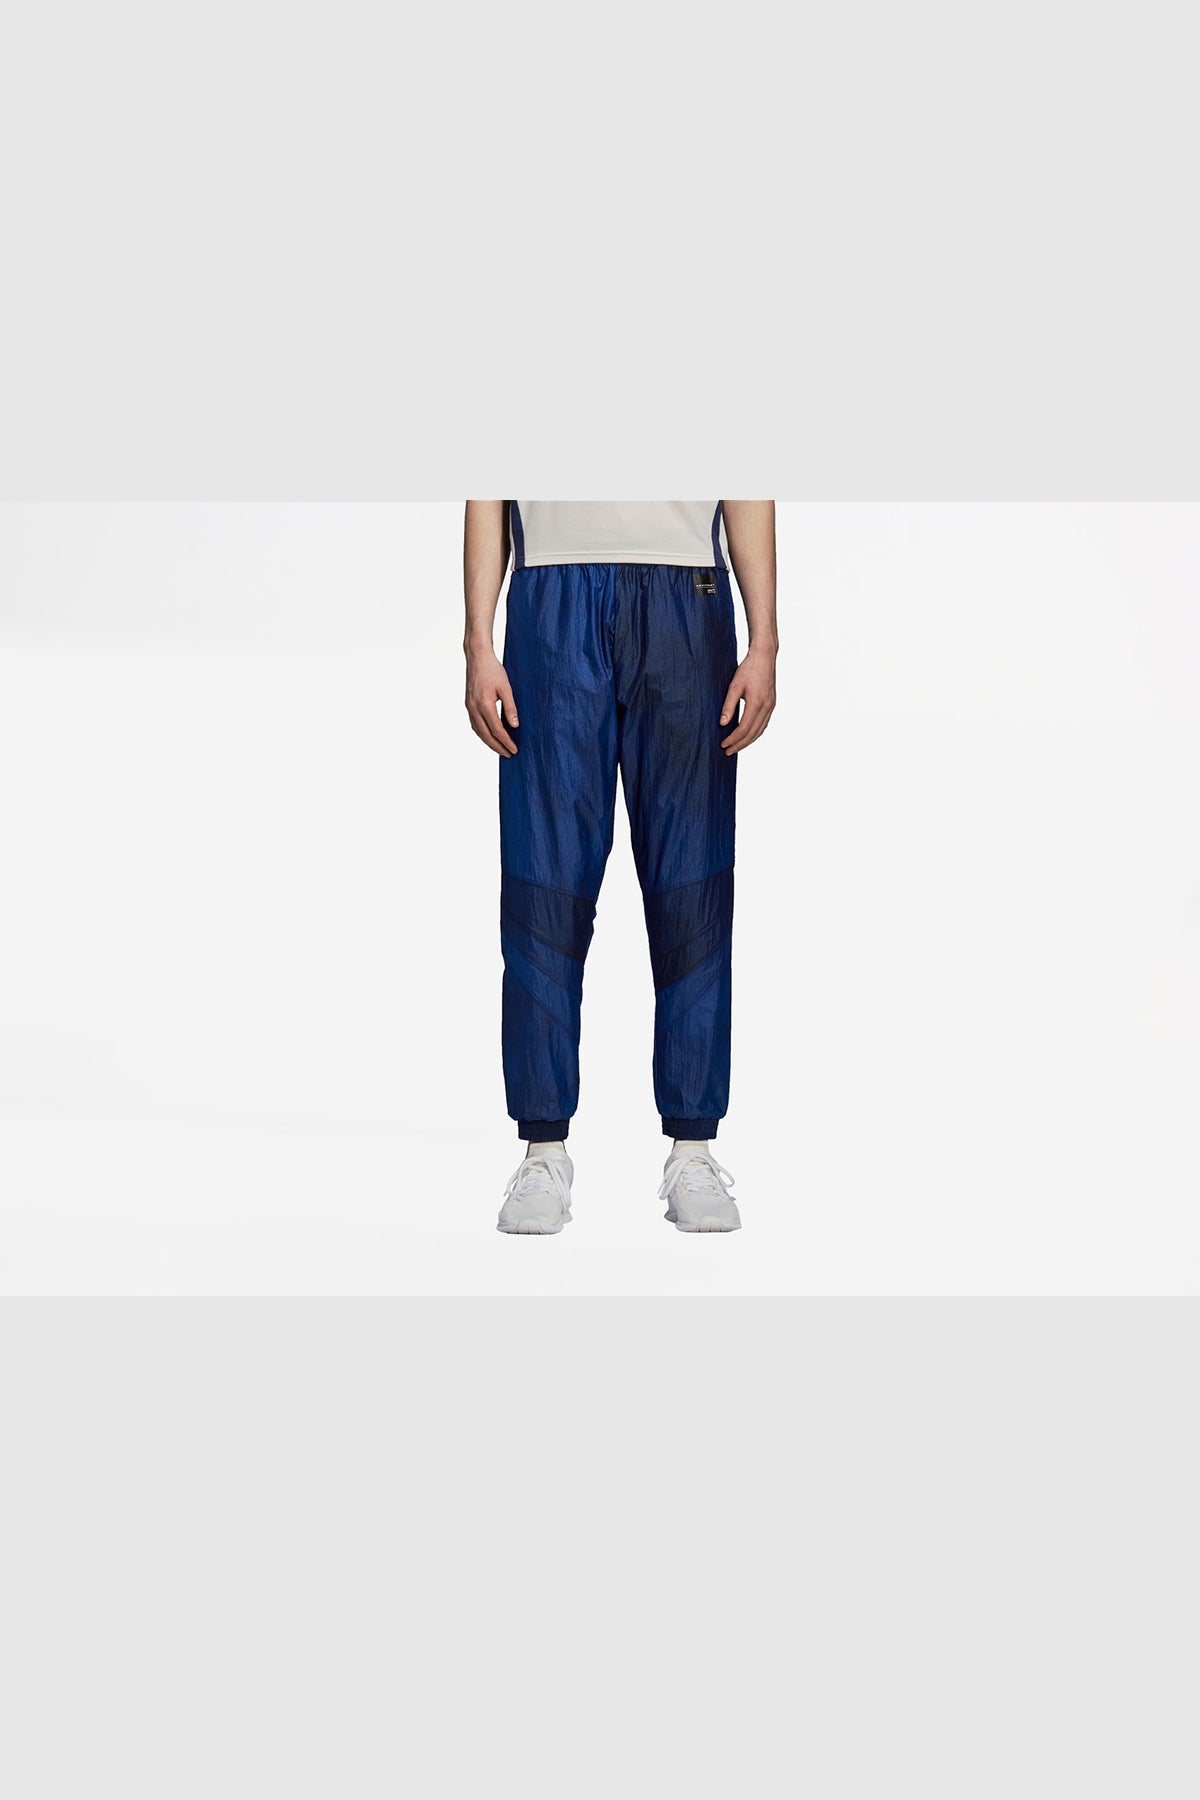 Adidas - EQT Indigo Tracksuit Pants (Night Sky) CD6831